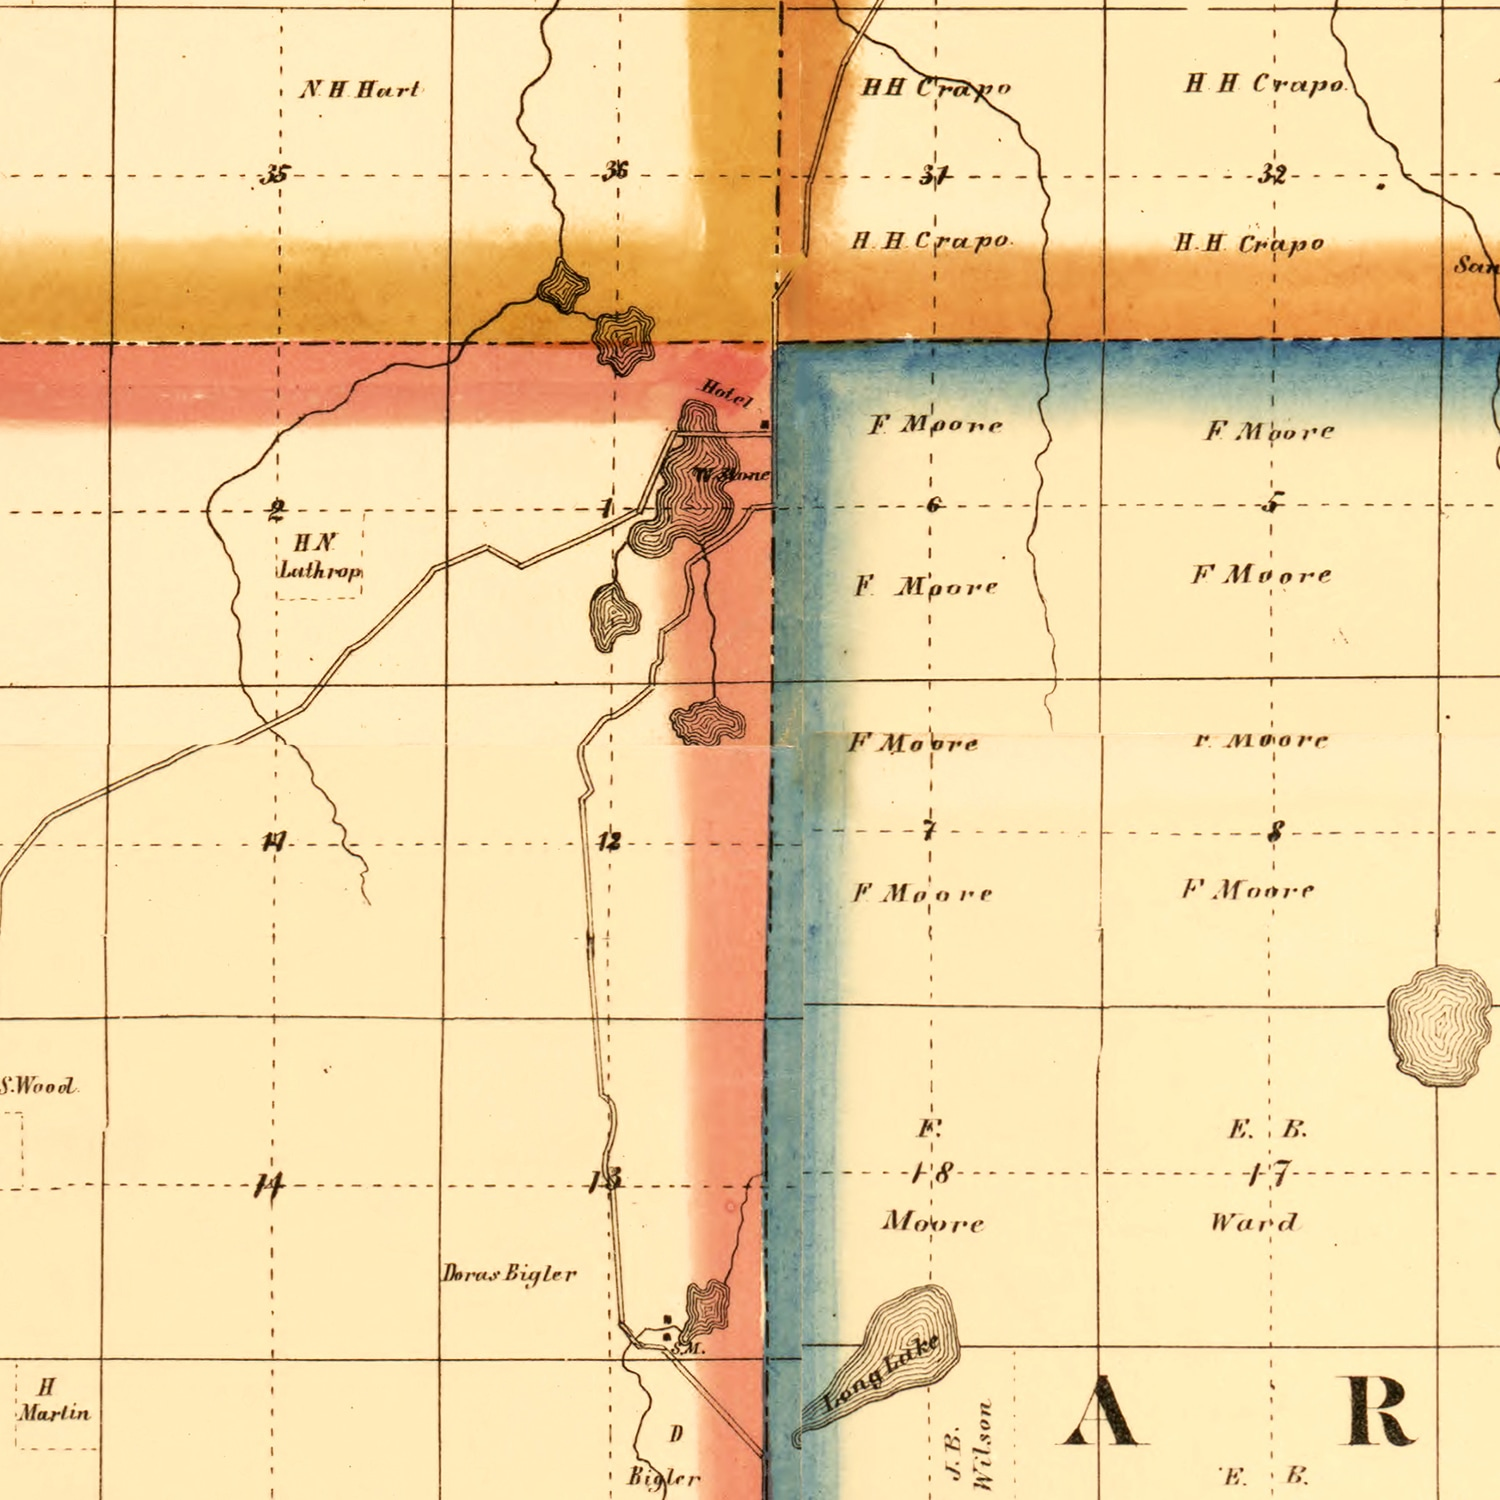 Vintage Map of Lapeer County, Michigan 1863